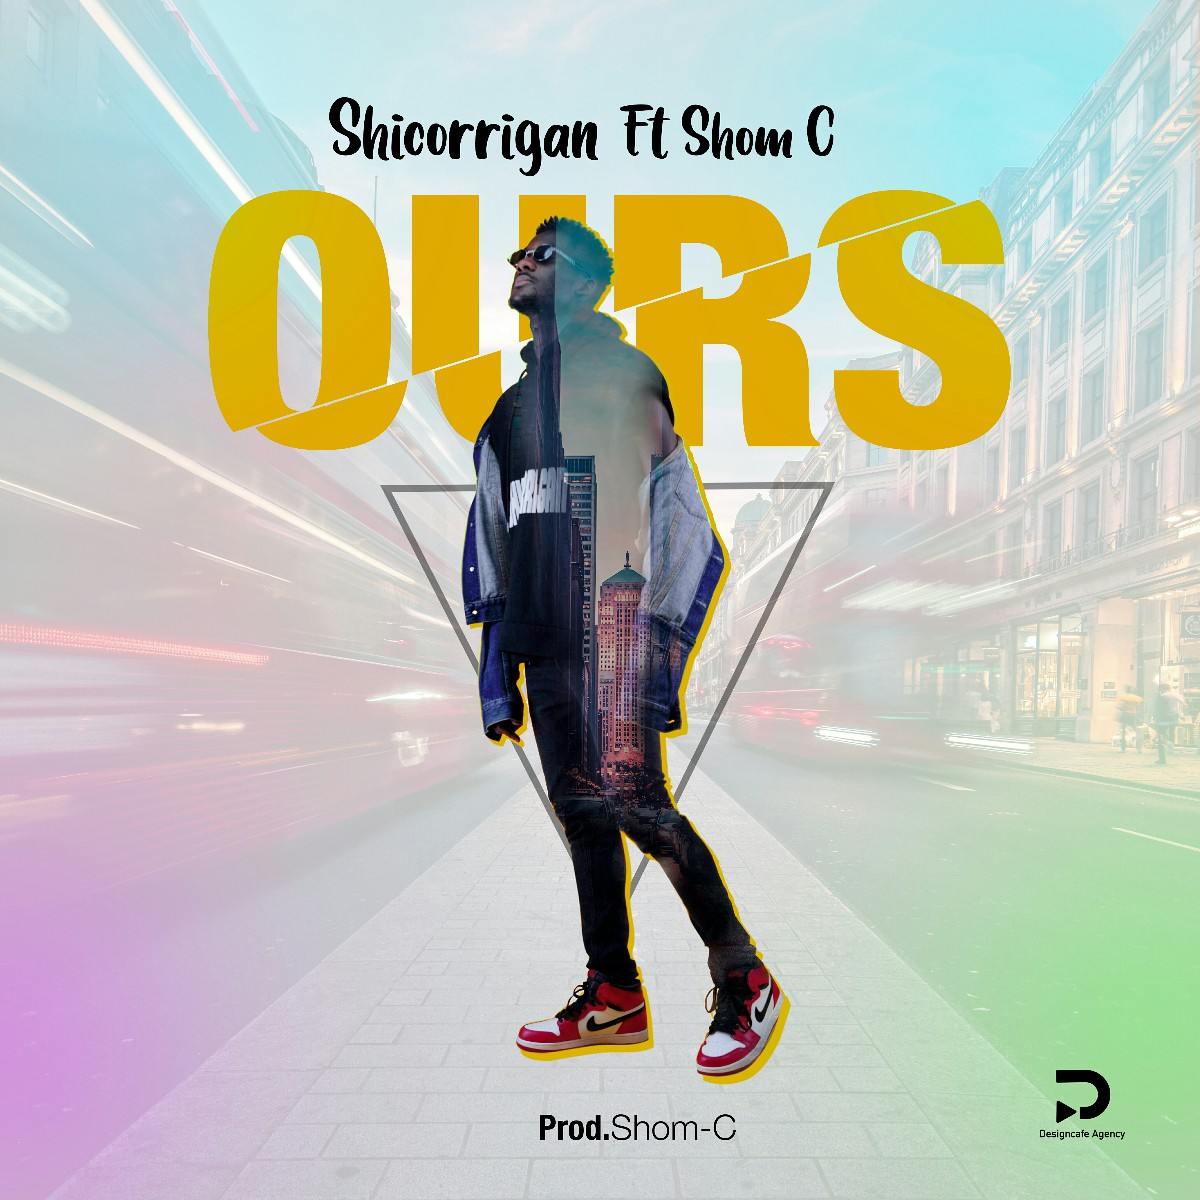 Shicorrigan ft. Shom C - Ours